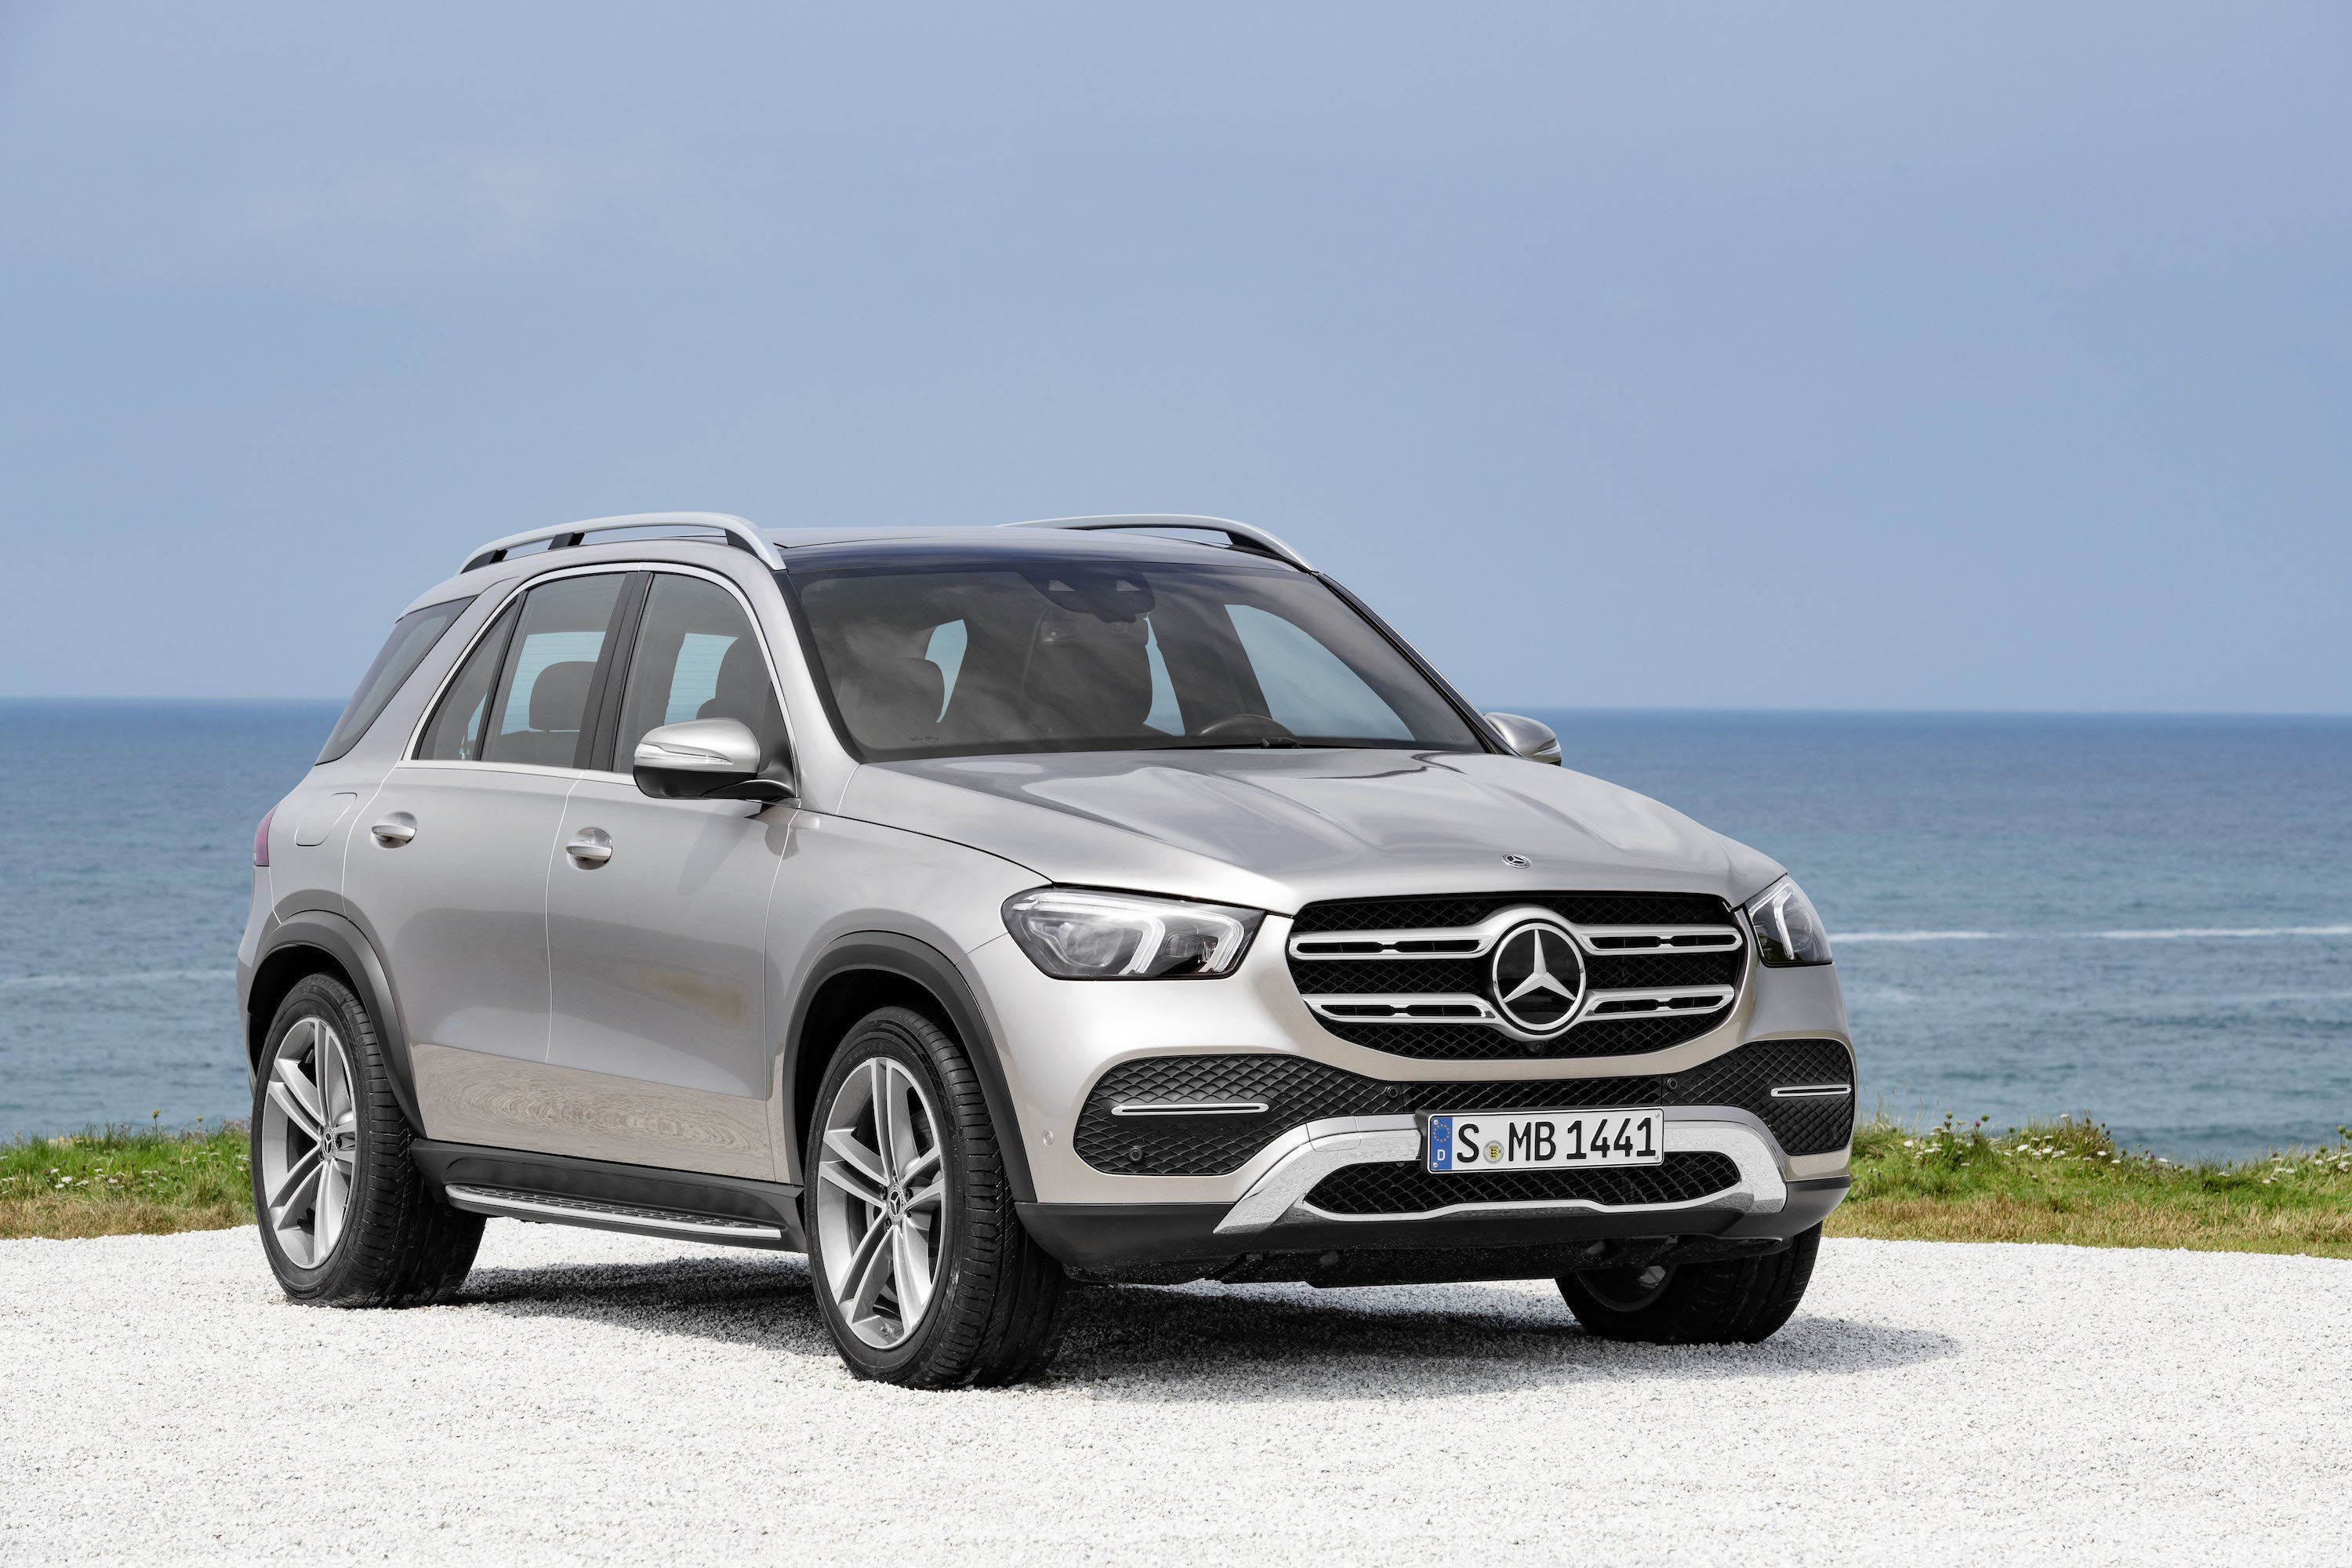 2020 Mercedes Ml Class Price and Release date